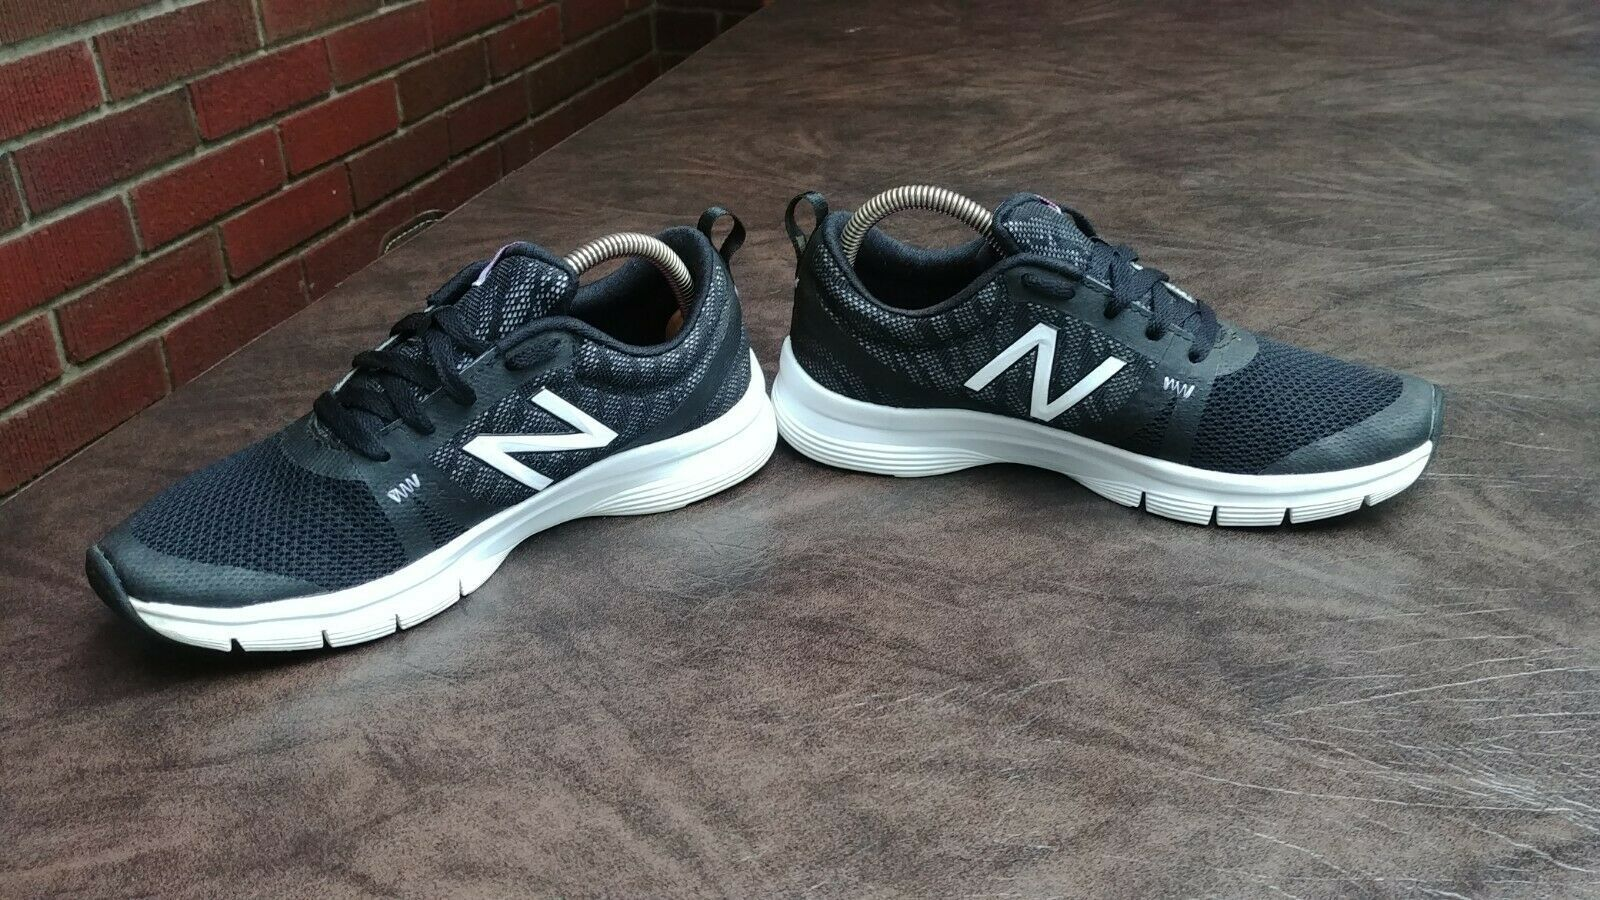 WOMENS NEW BALANCE 715 RUNNING SHOES SZ 8 39.5 B USED SNEAKERS WX715CP1